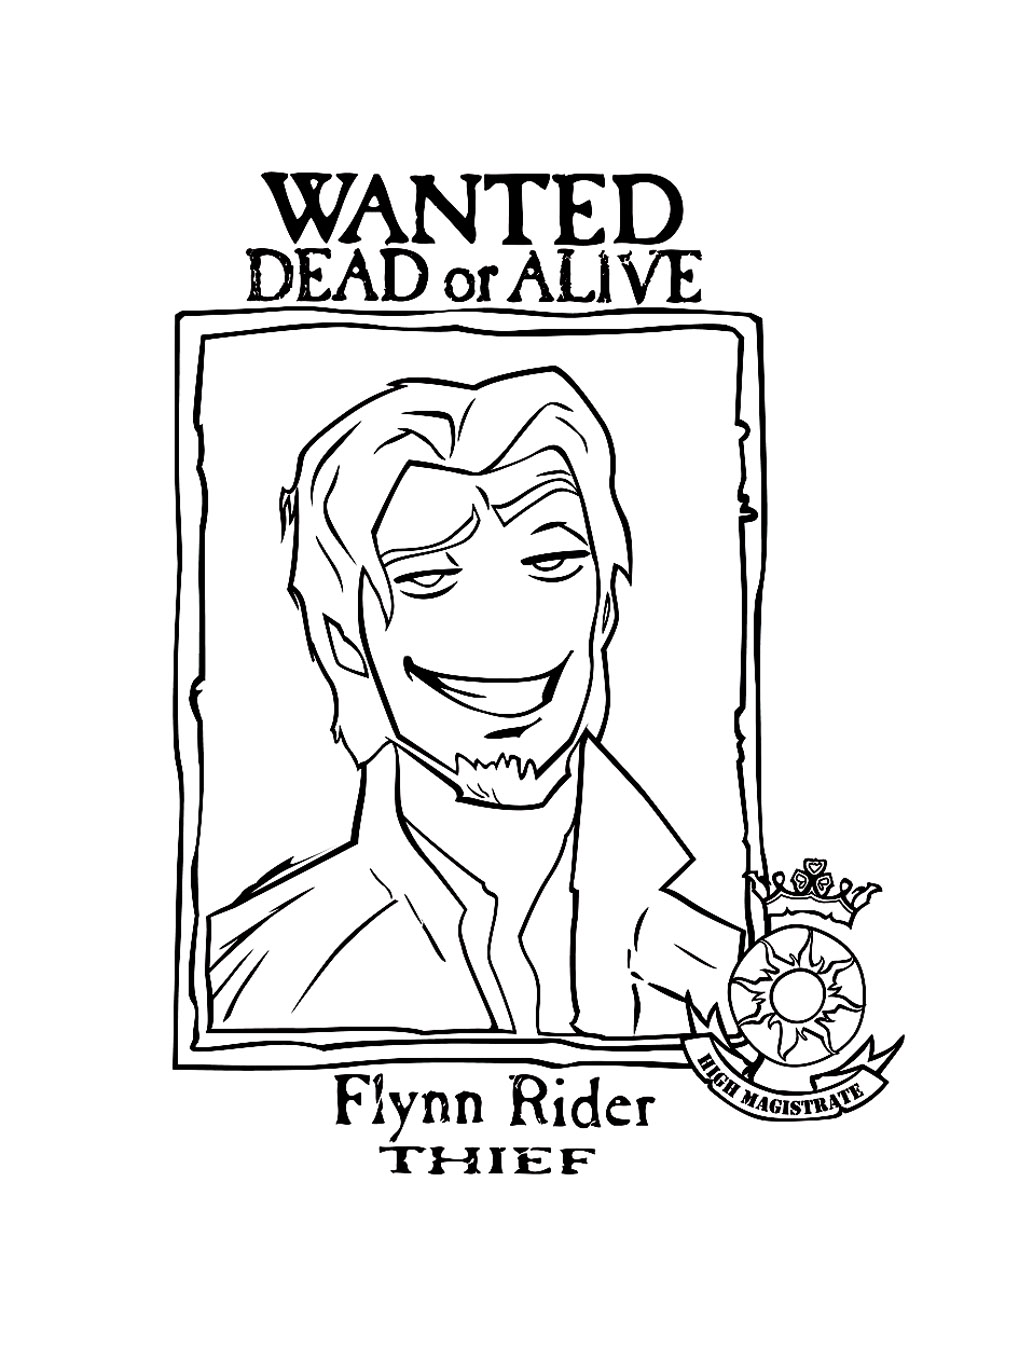 The wanted photo of Flynn rider Coloring Page